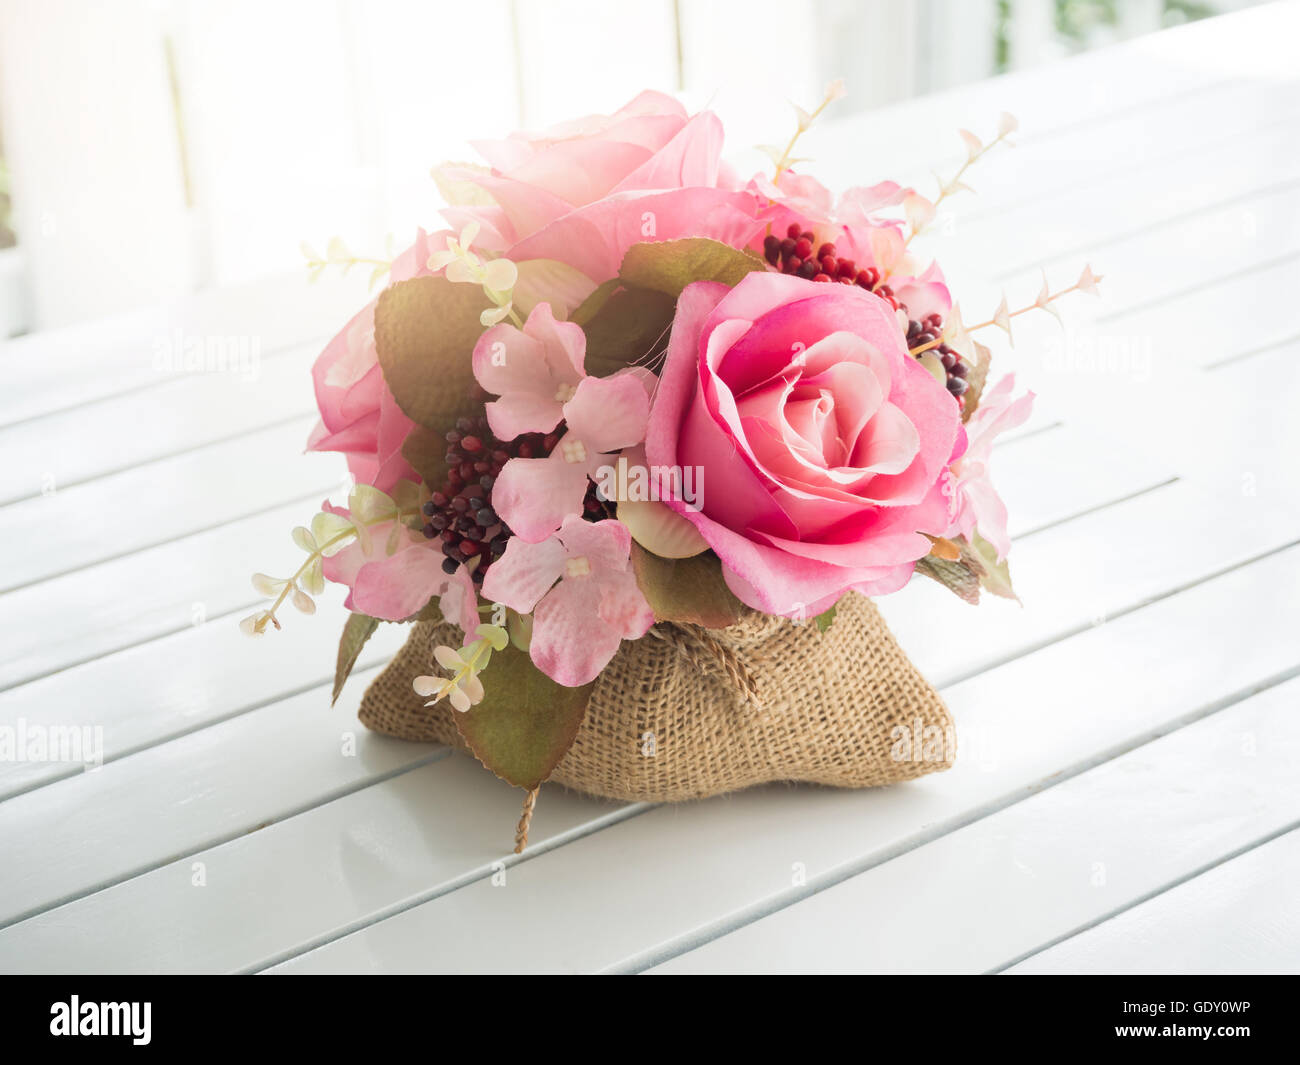 Bouquet Of Beautiful Artificial Flowers On White Wooden Table In A